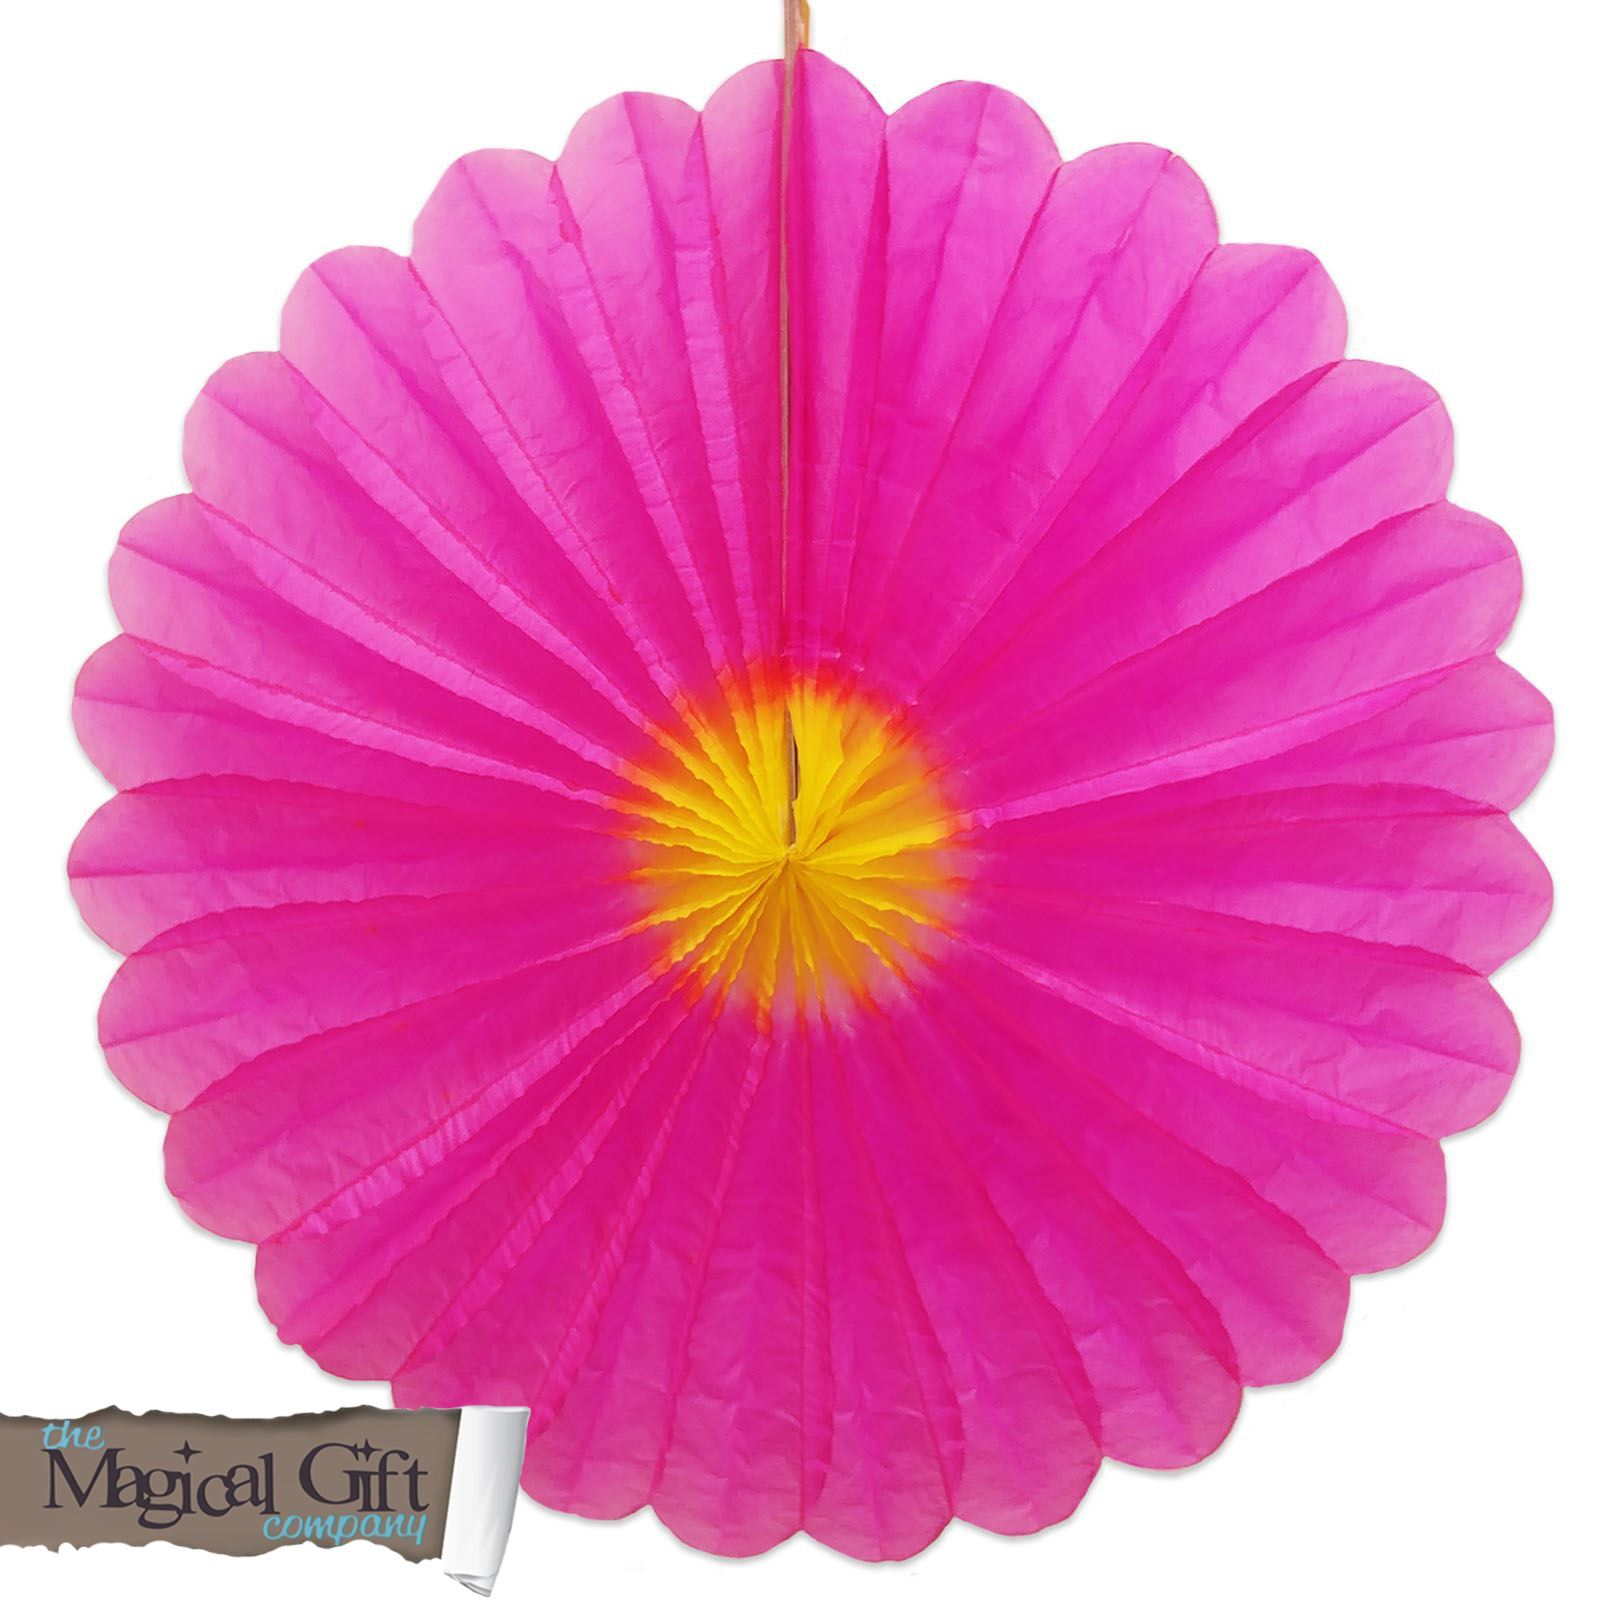 buy popular f9830 b58a6 Gisela Graham Pink Paper Honeycomb Flower Hanging Easter Party Decoration  40cm